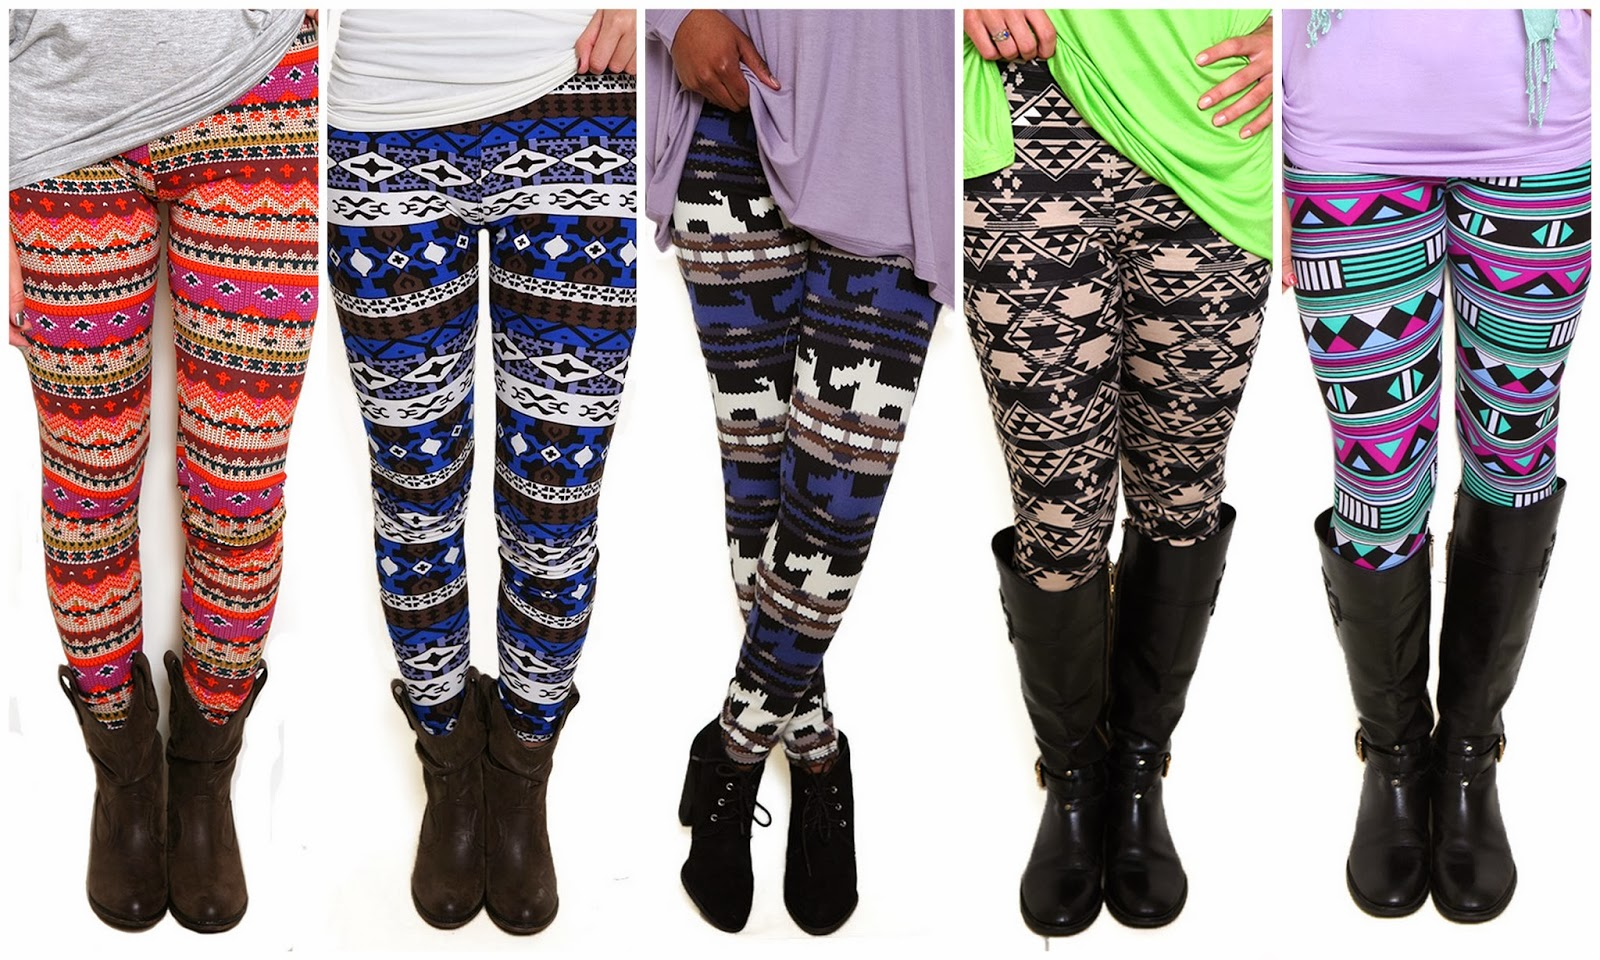 http://flourishboutique.com/patterned-leggings.html